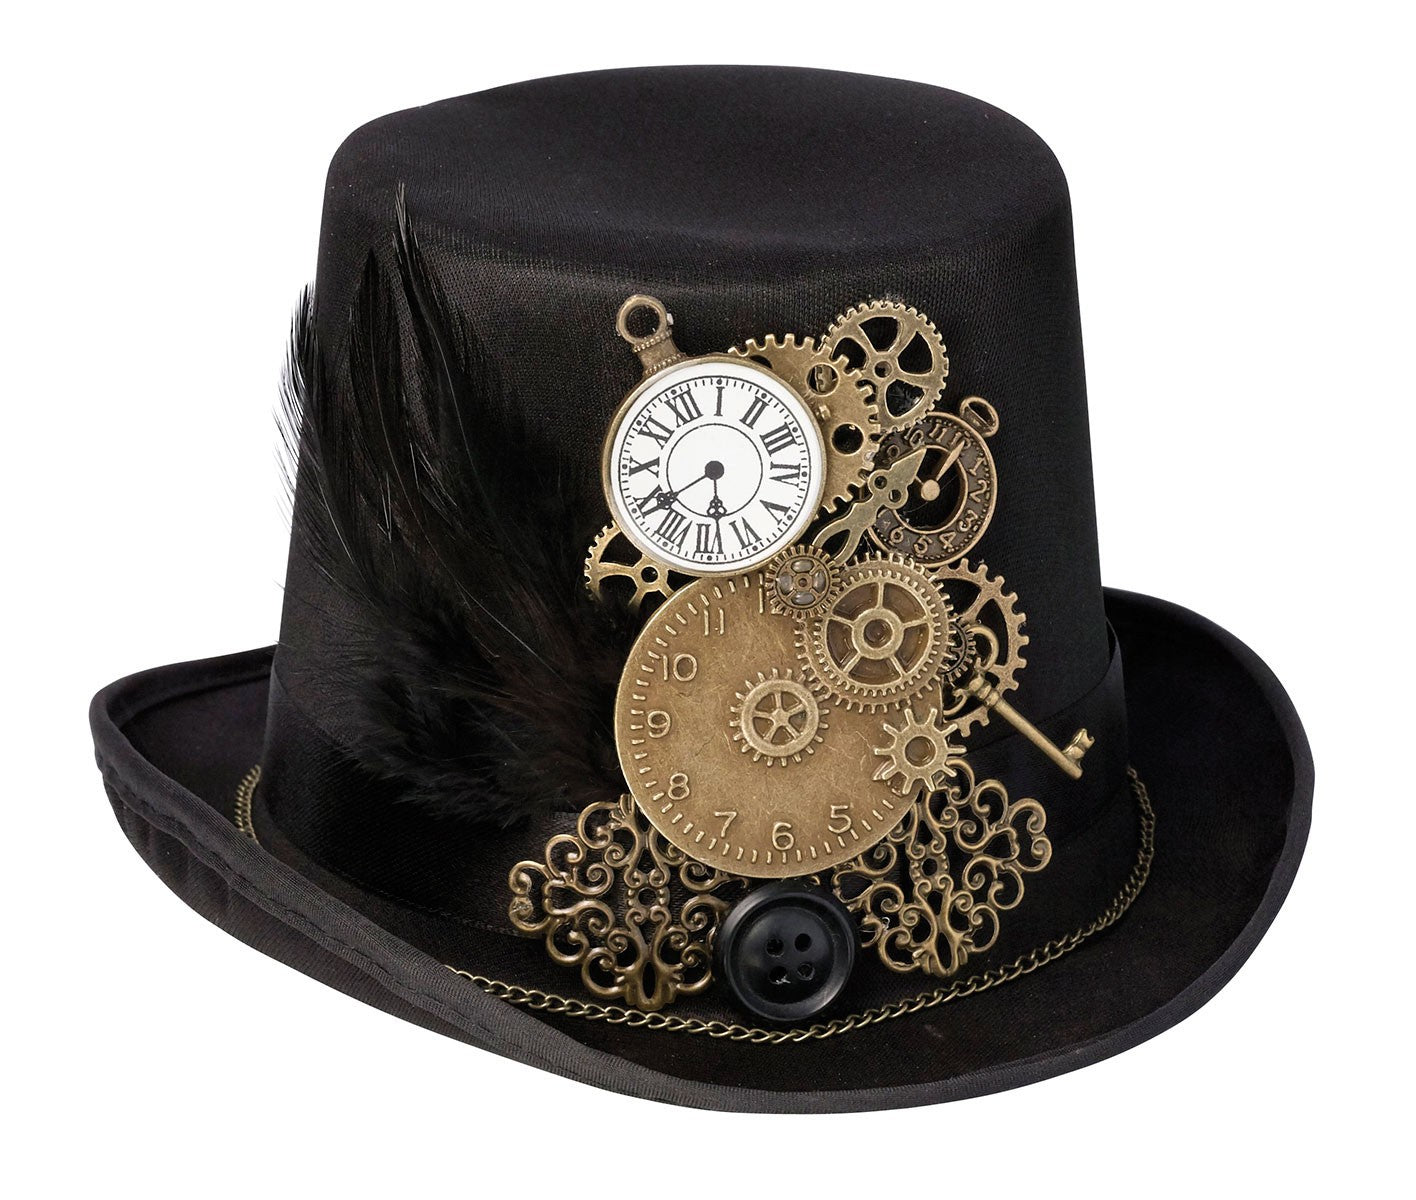 Wedding Ring Pillow Steampunk Top Hat by Lillian Rose